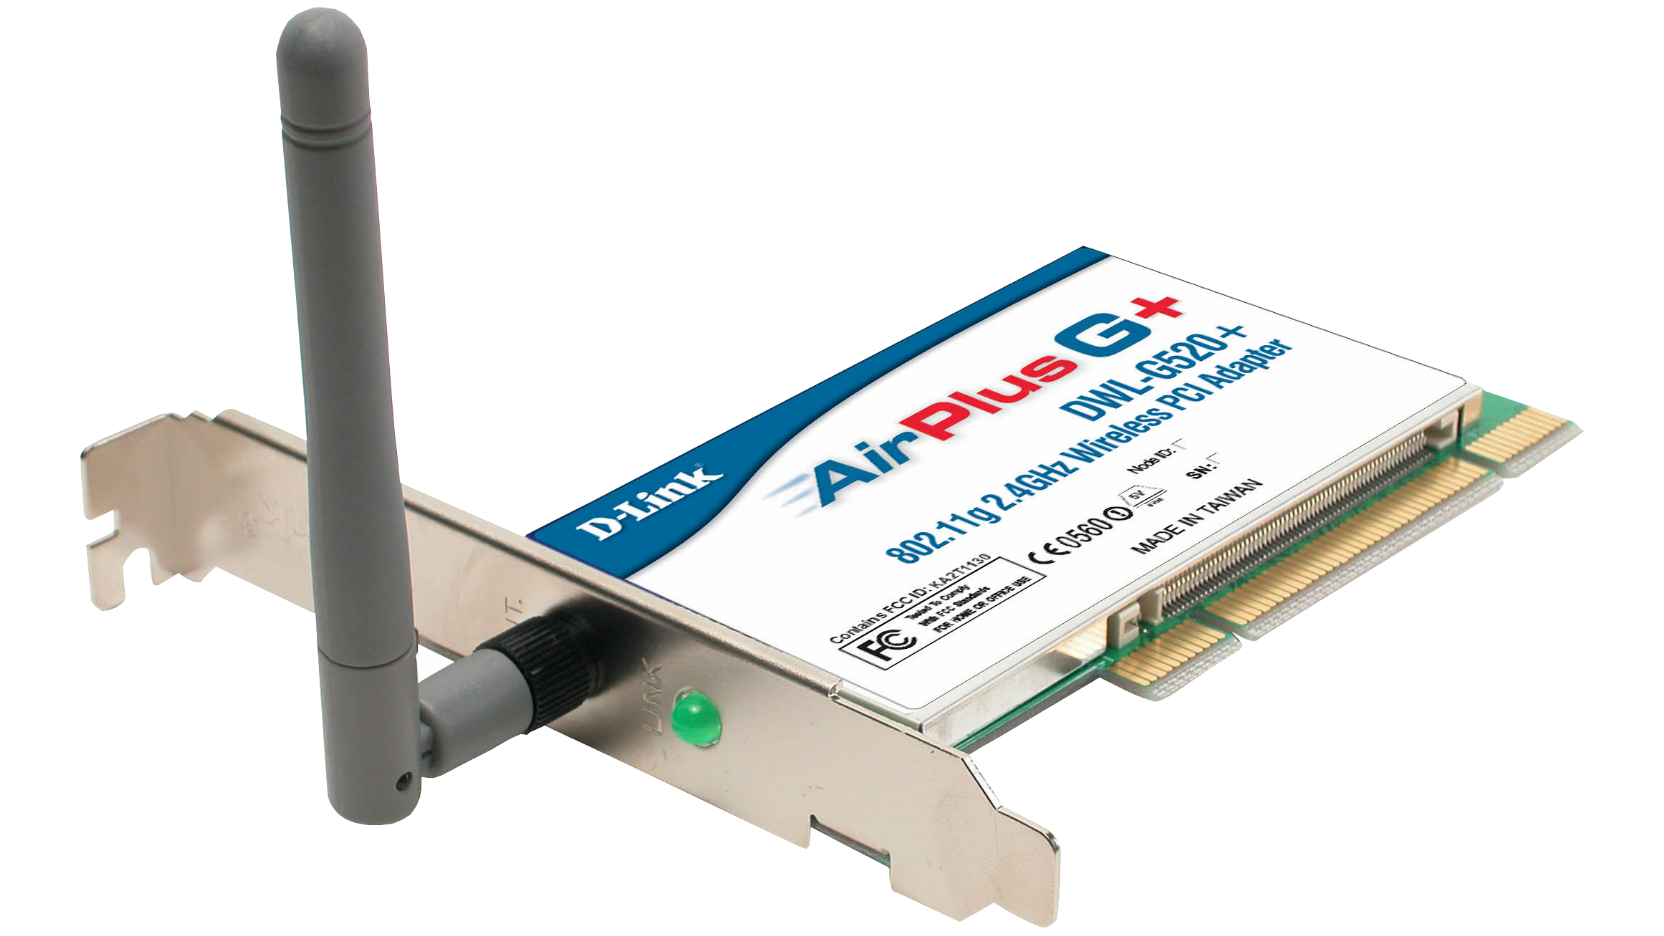 DLINK AIRPLUS XTREME G DWL-520 DRIVER FOR WINDOWS 8